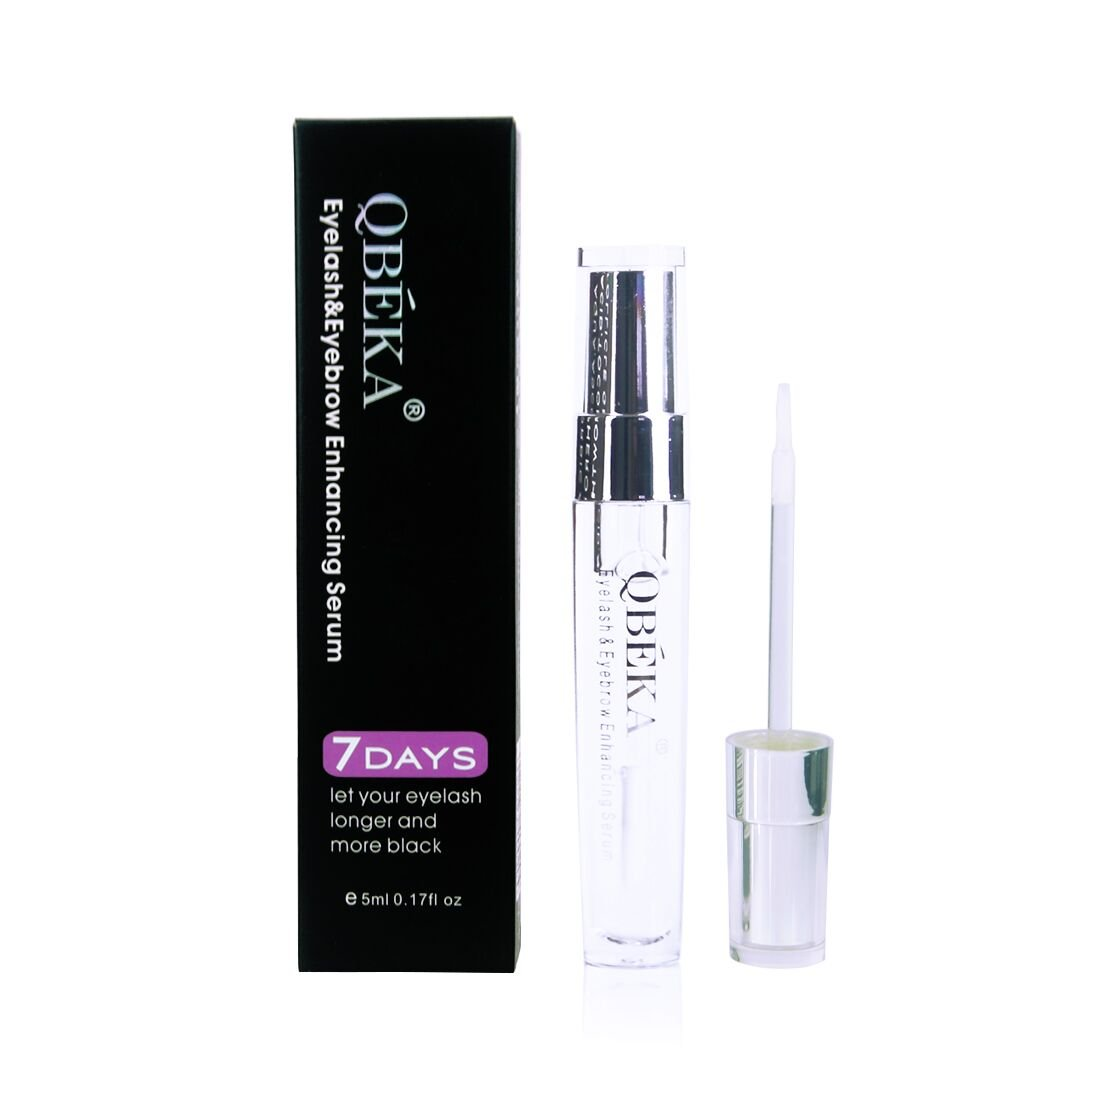 QBEKA Eyelash & Eyebrow Growth Serum - No Side Effect for Longer Fuller Thicker Lashes & Brows Conditioner Natural Enhancer Treament 5ml 0.17 fl oz